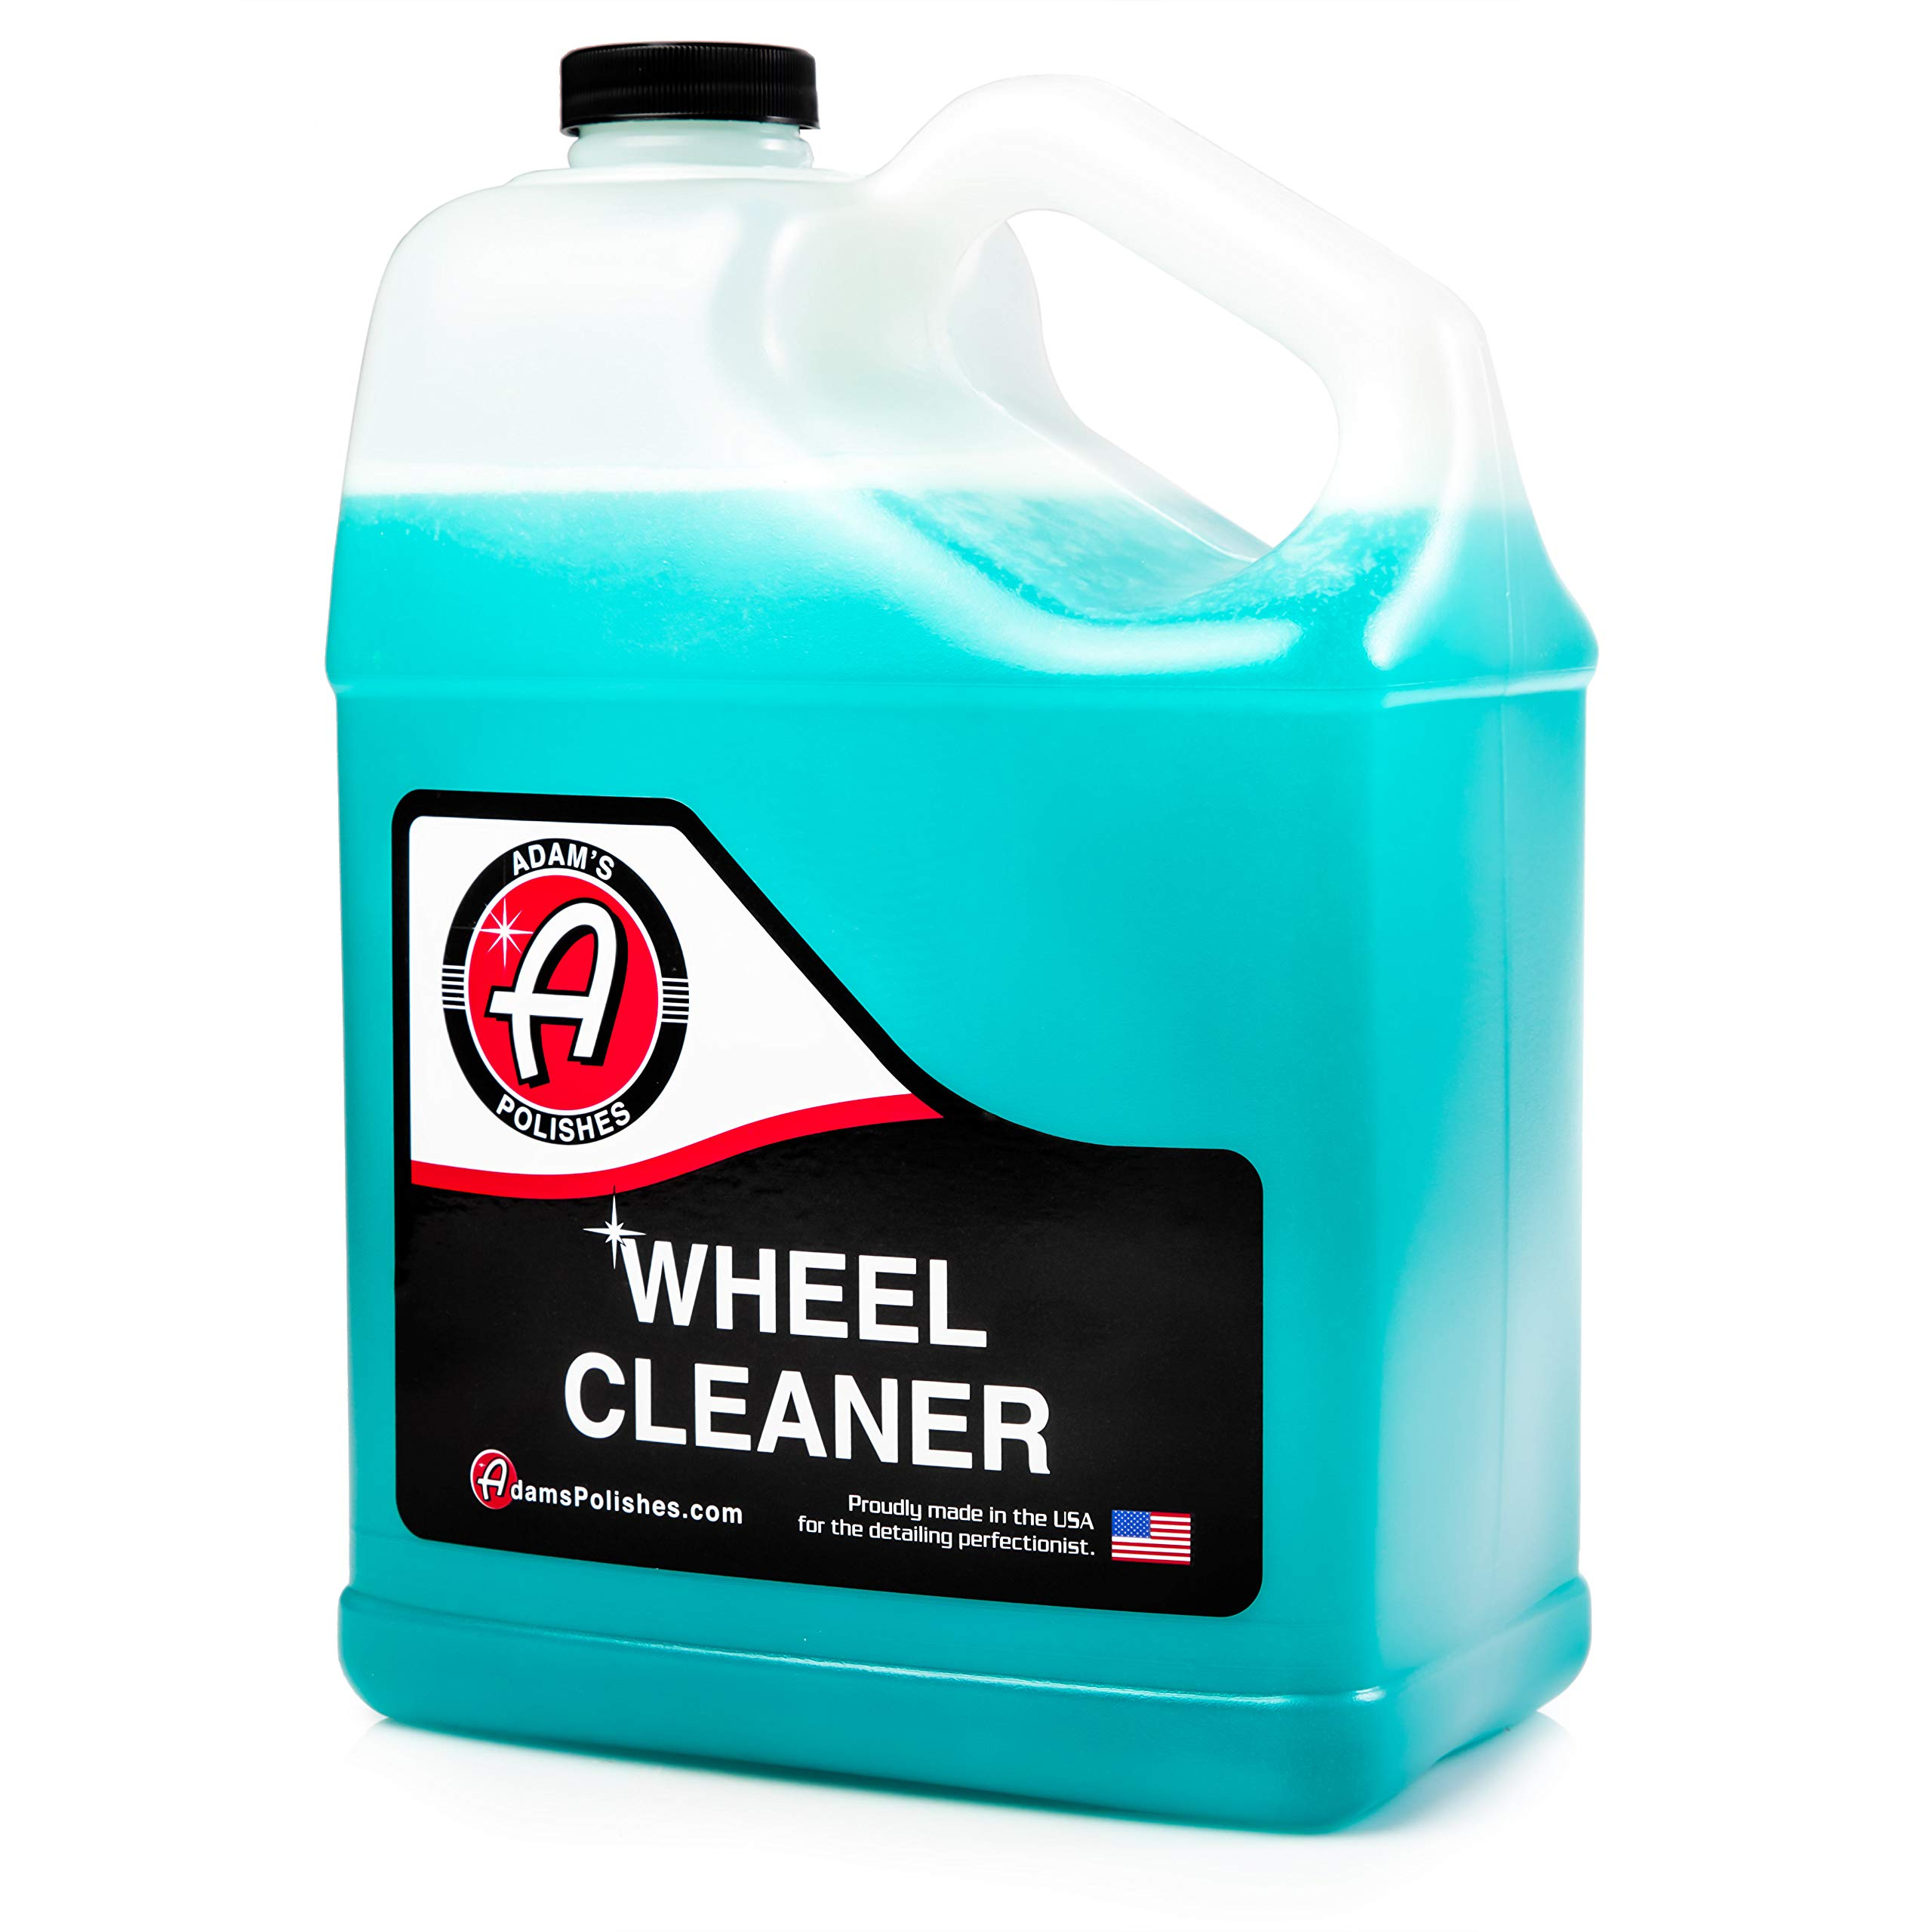 Adam's Wheel Cleaner Gallon - Tough Wheel Cleaning Spray for Car Wash Detailing | Rim Cleaner & Brake Dust Remover | Safe On Chrome Clear Coated & Plasti Dipped Wheels| Use w/Wheel Brush